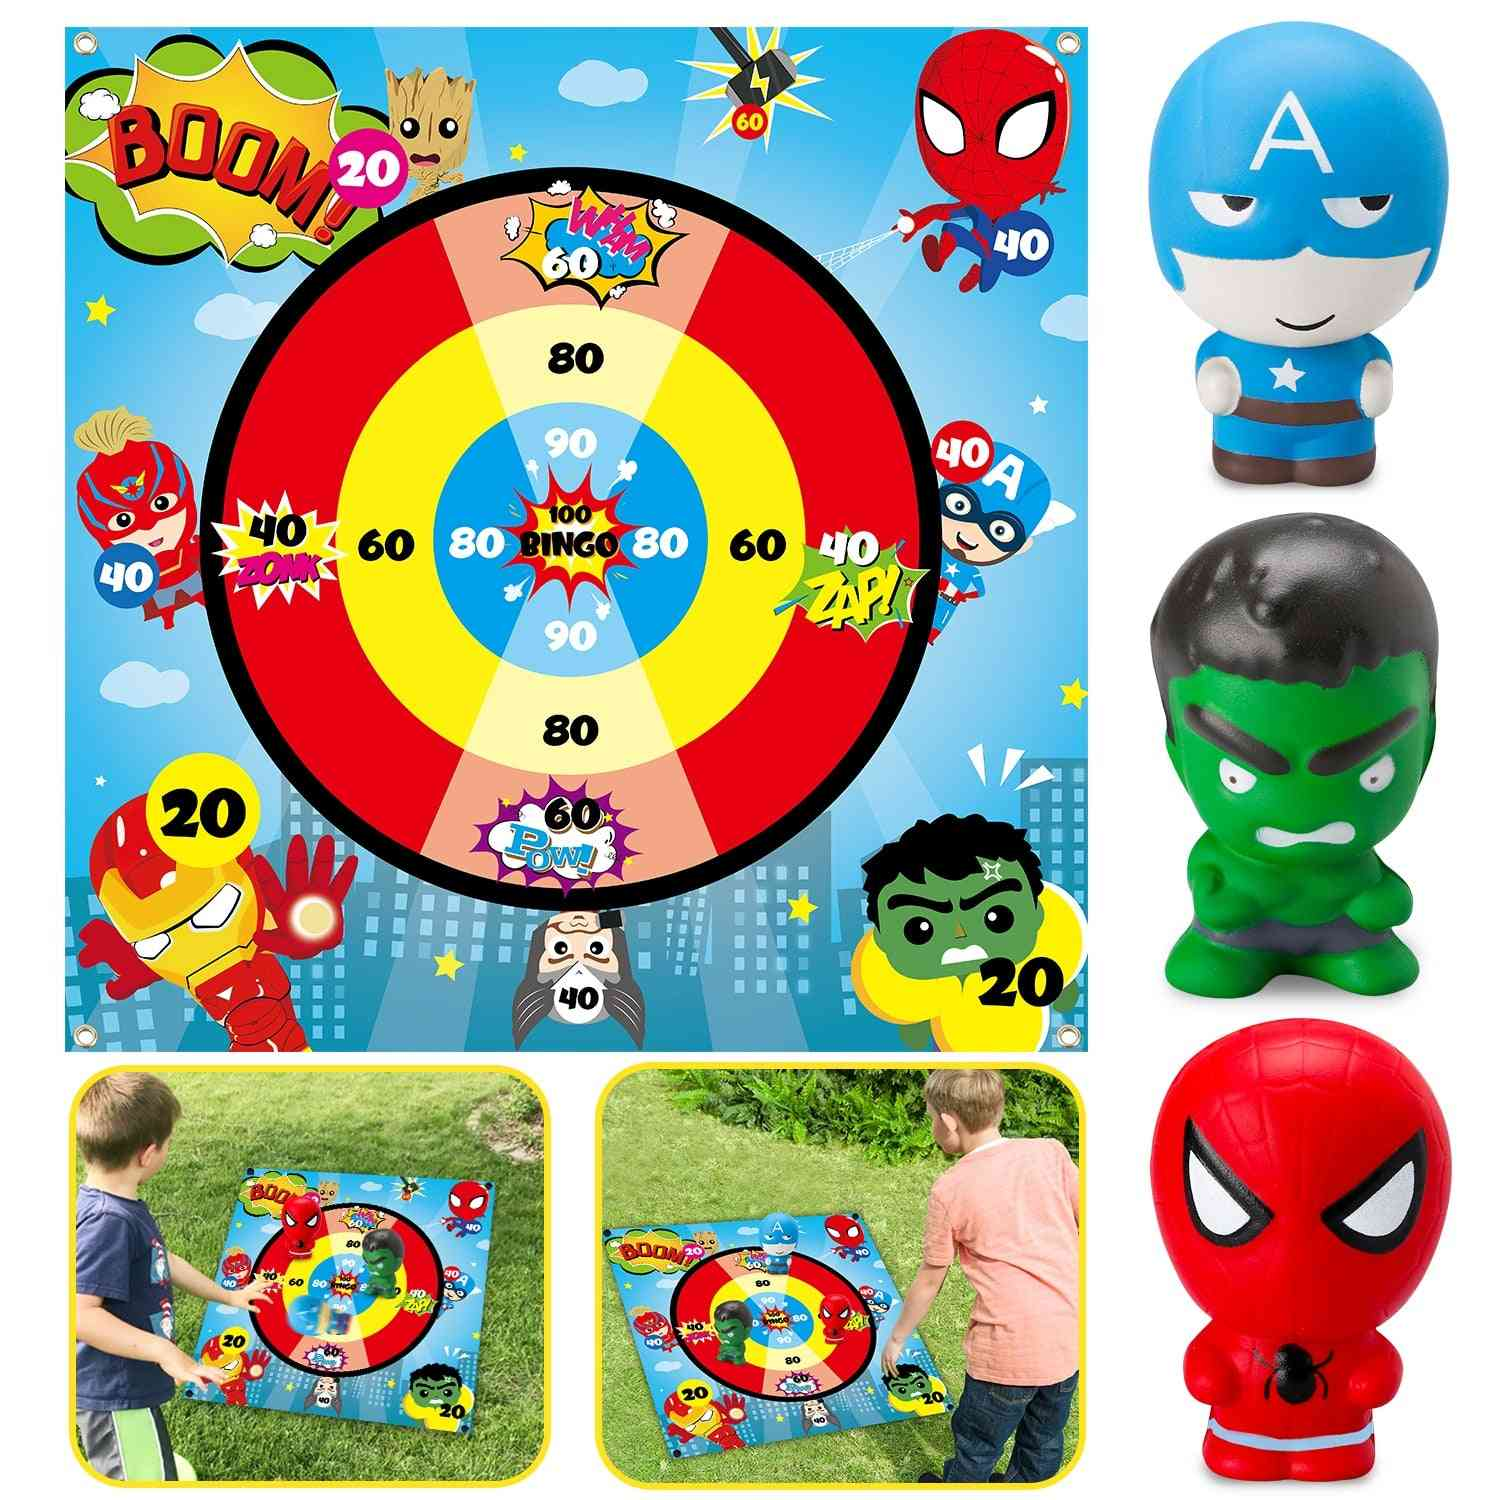 Superhero Flarts Lawn Dart Game Of Safe Version, Throwing Squishies Toy On Fabric Score Mat, Indoor Or Outdoor Yard Game For Kids